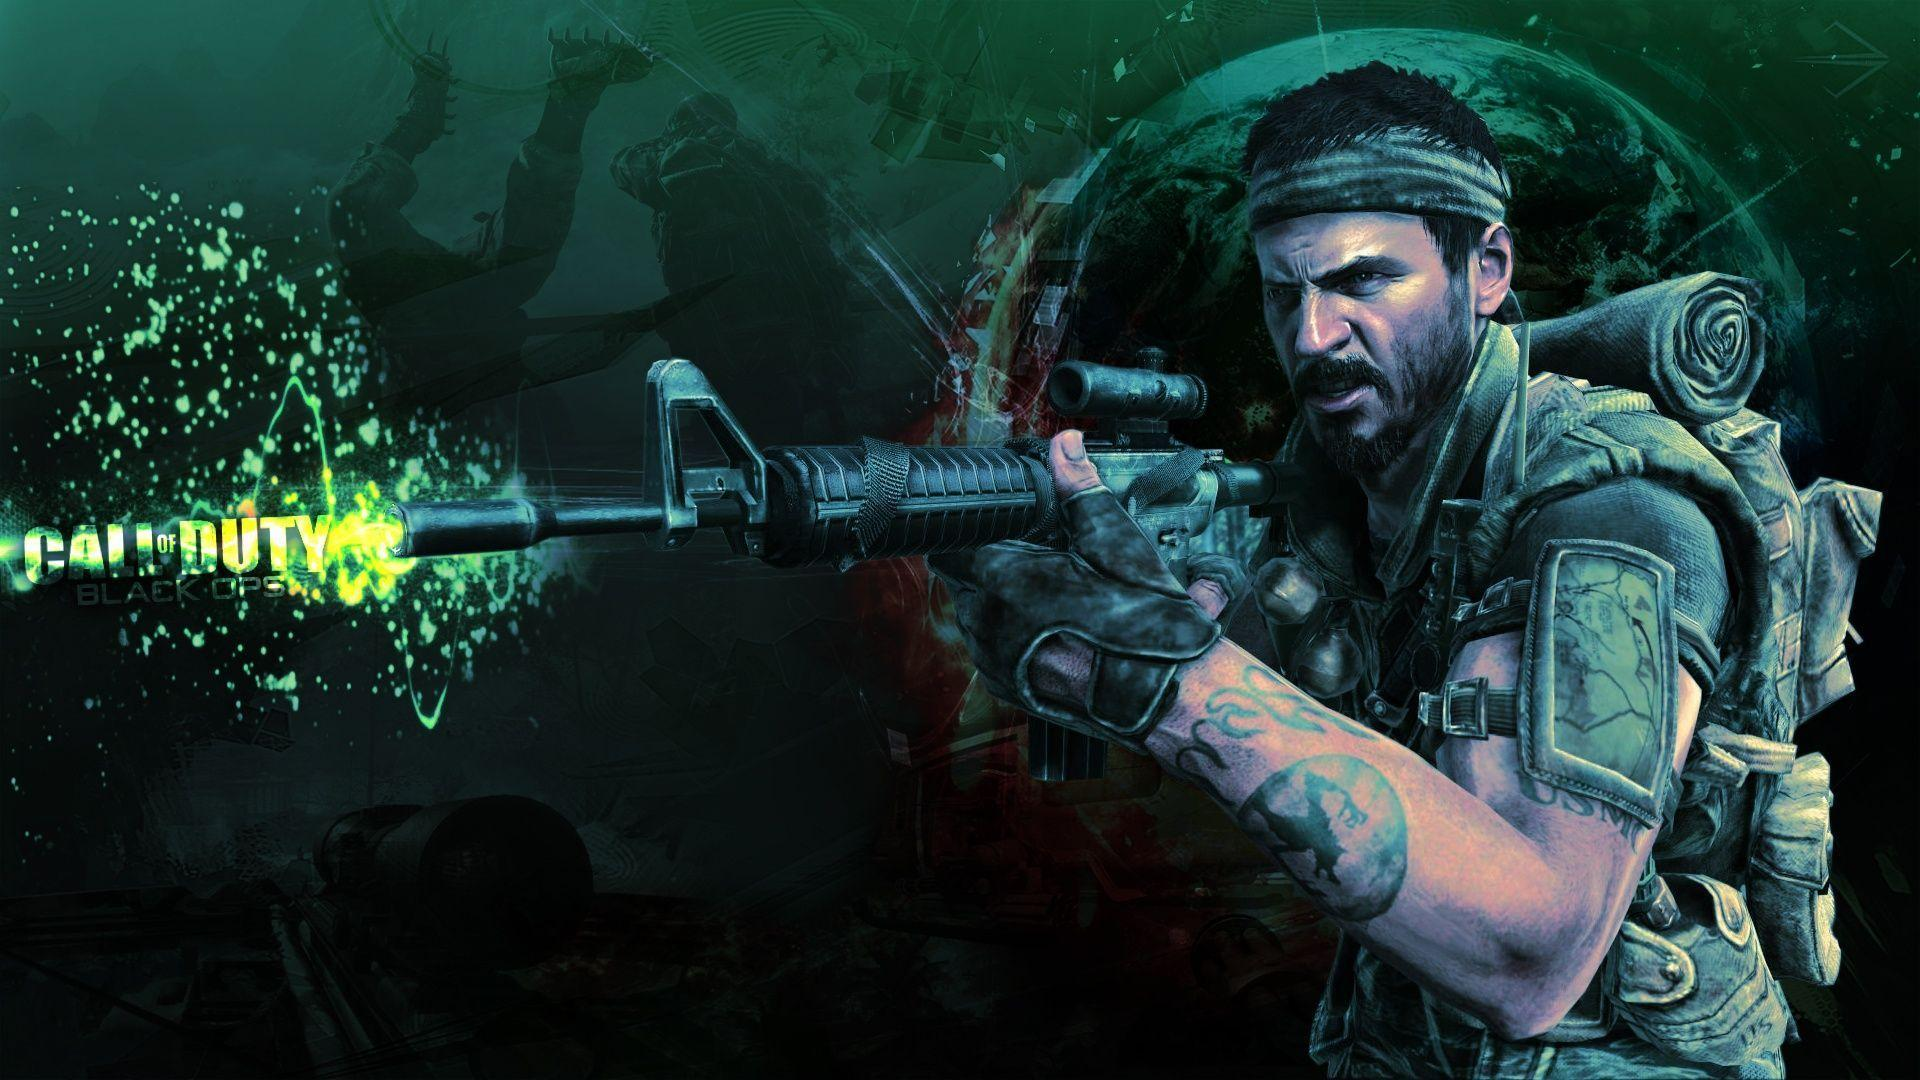 call of duty ghosts live wallpapers apk » Game Wallpapers Collections